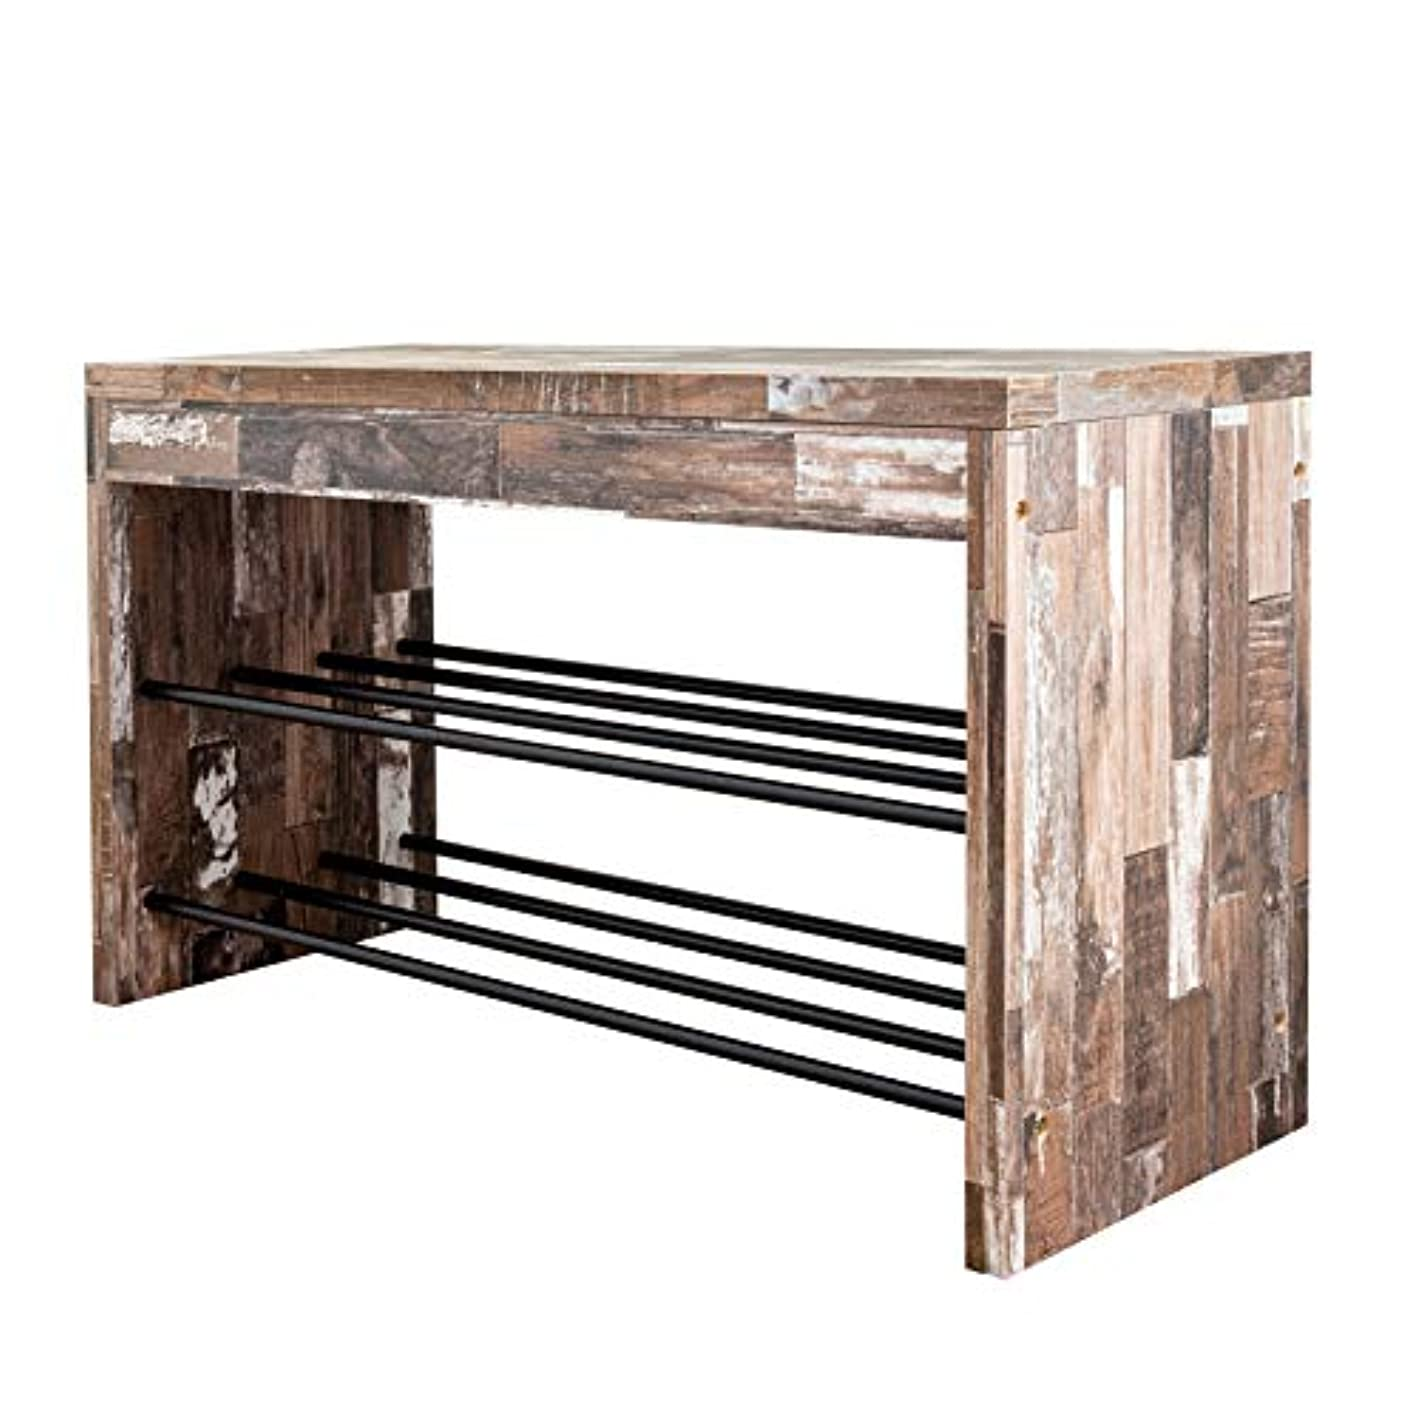 Danya B. HA83110 Industrial Home Decor – Decorative Shoe Bench in Distressed Wood Finish with Two Metal Storage Racks